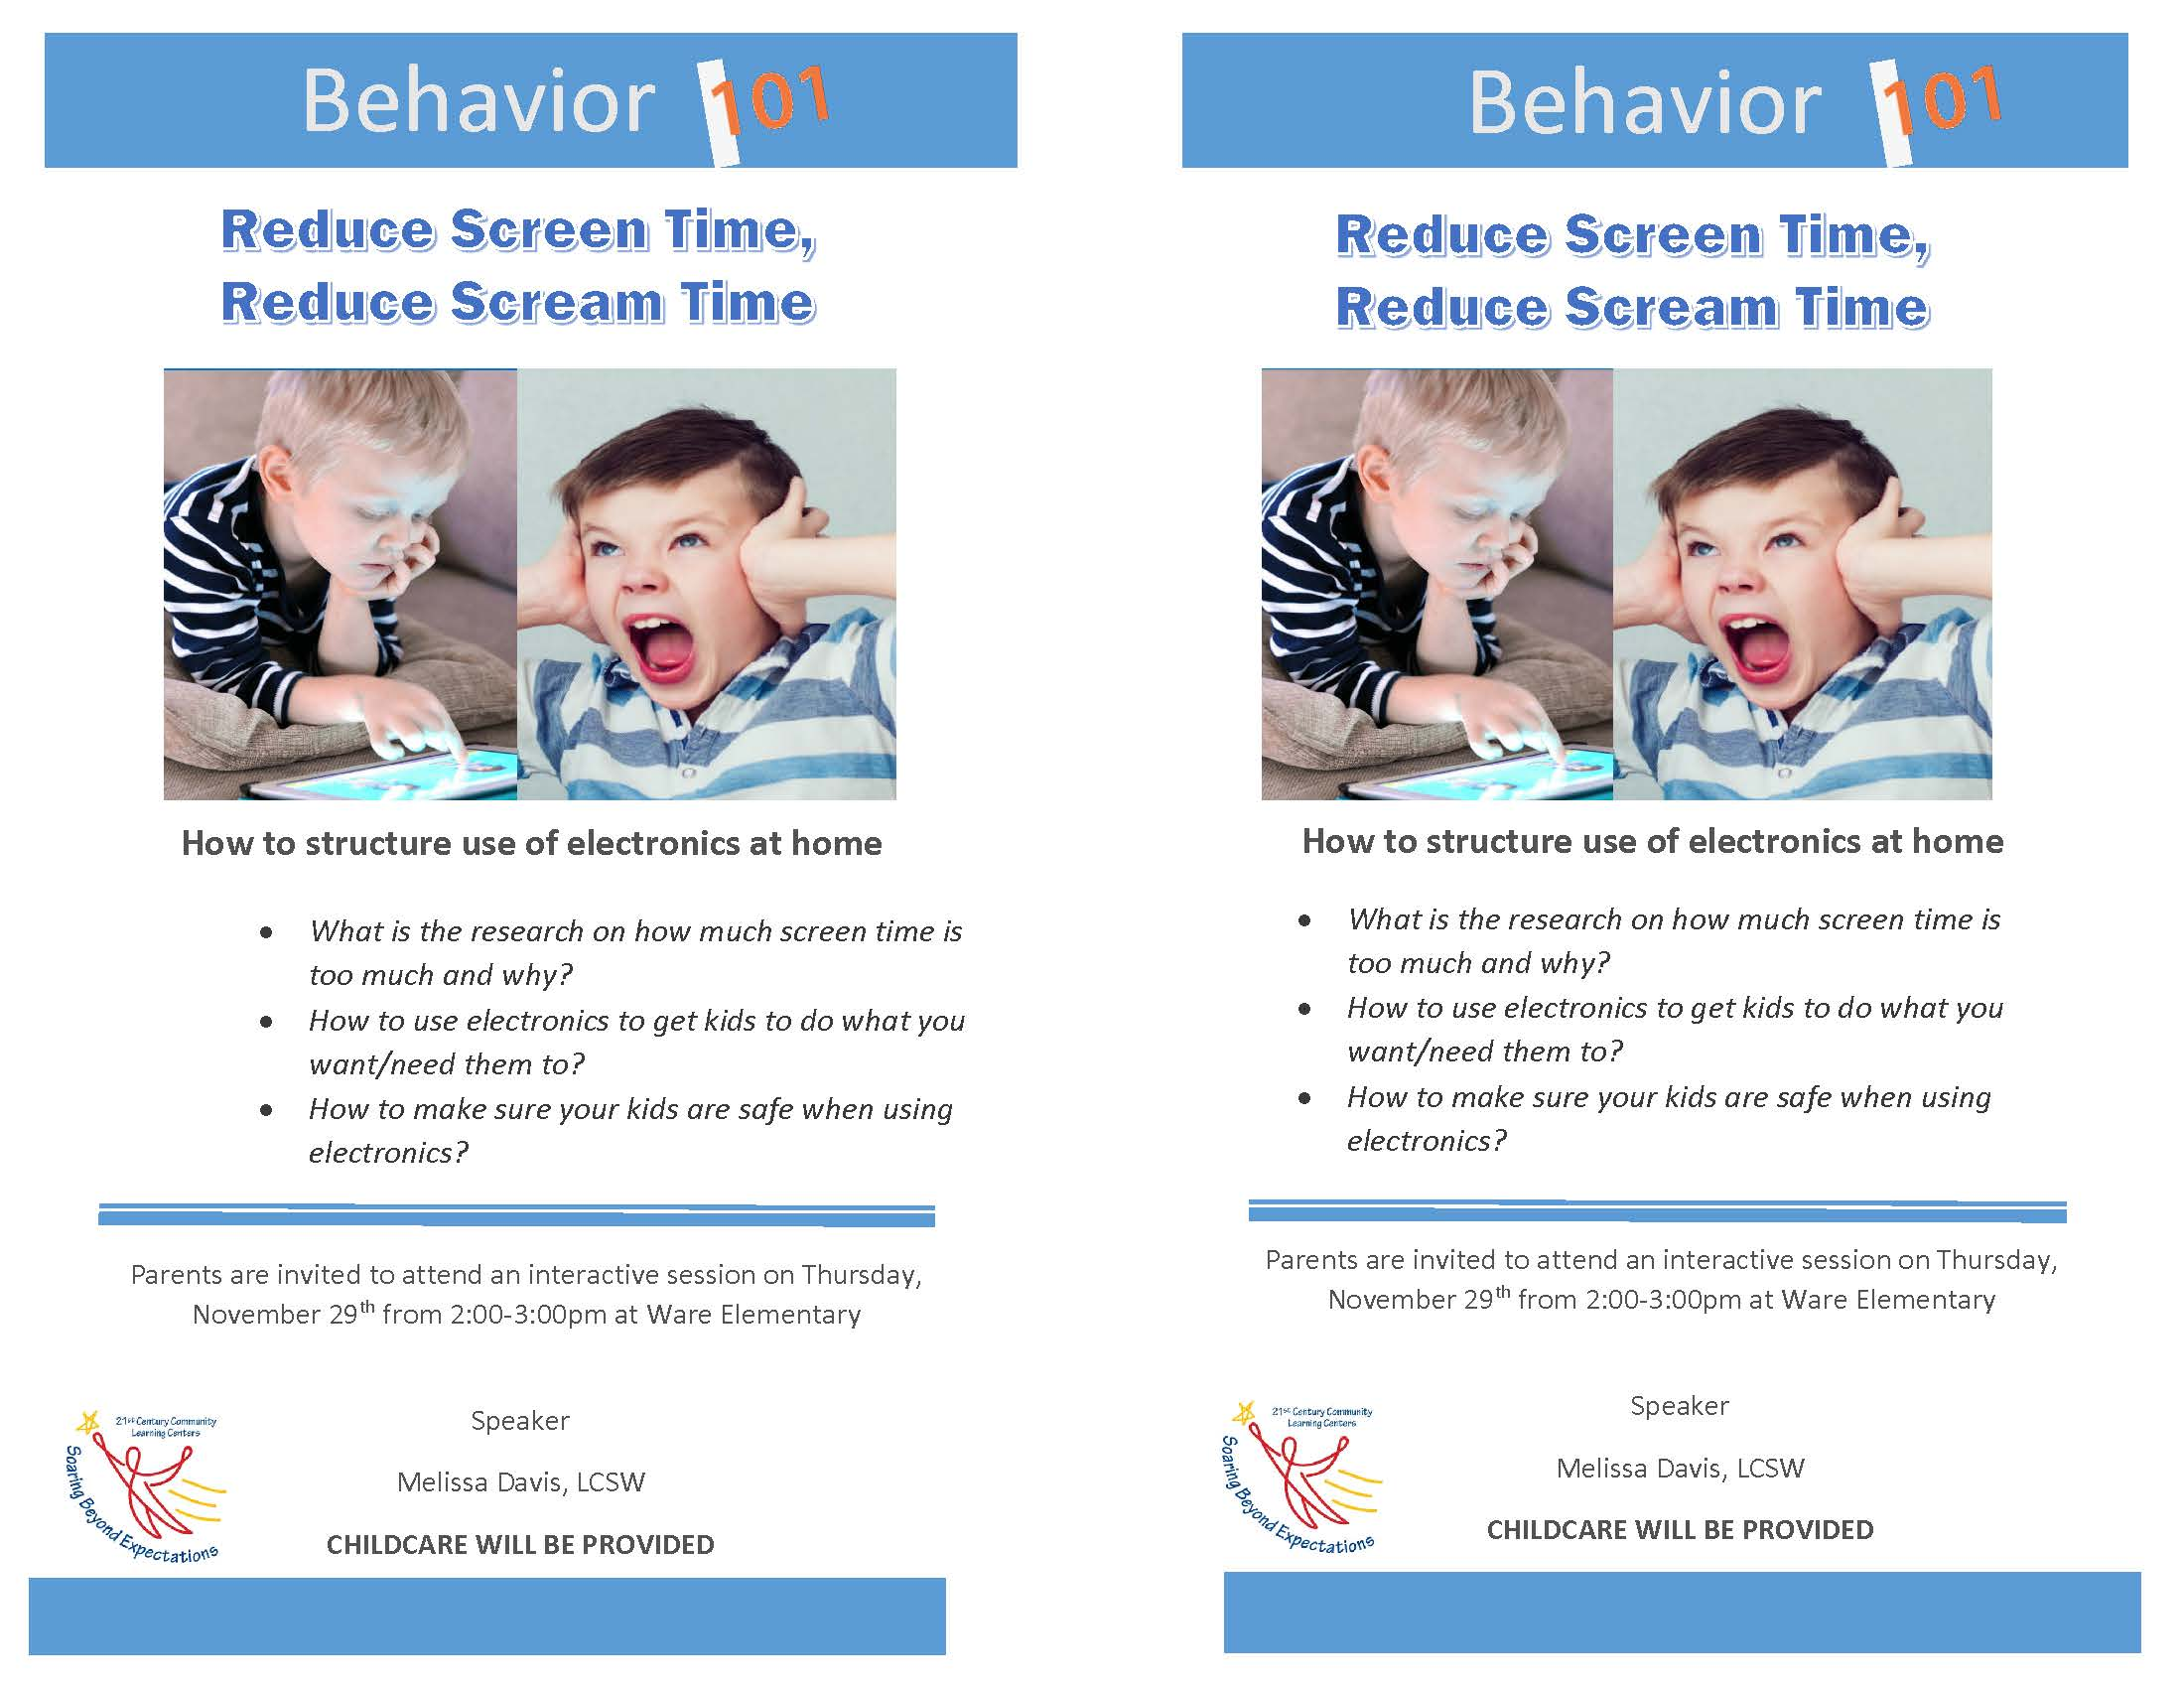 Flyer on Behavior 101- Reducing Screen Time. All information is above.